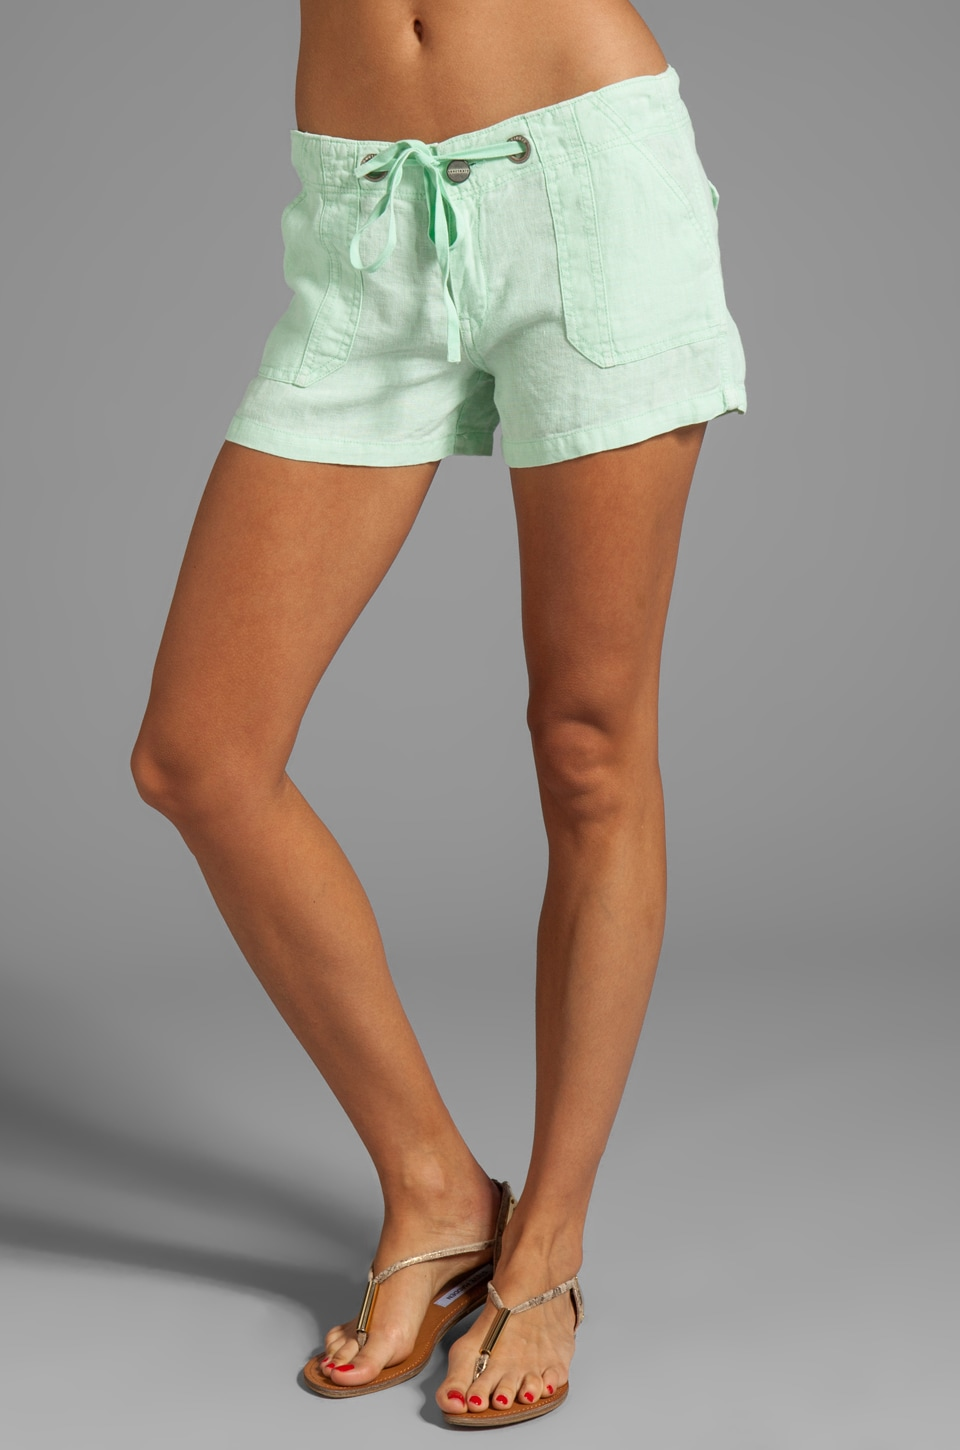 Sanctuary Soft Bottoms Trek Short in Mint